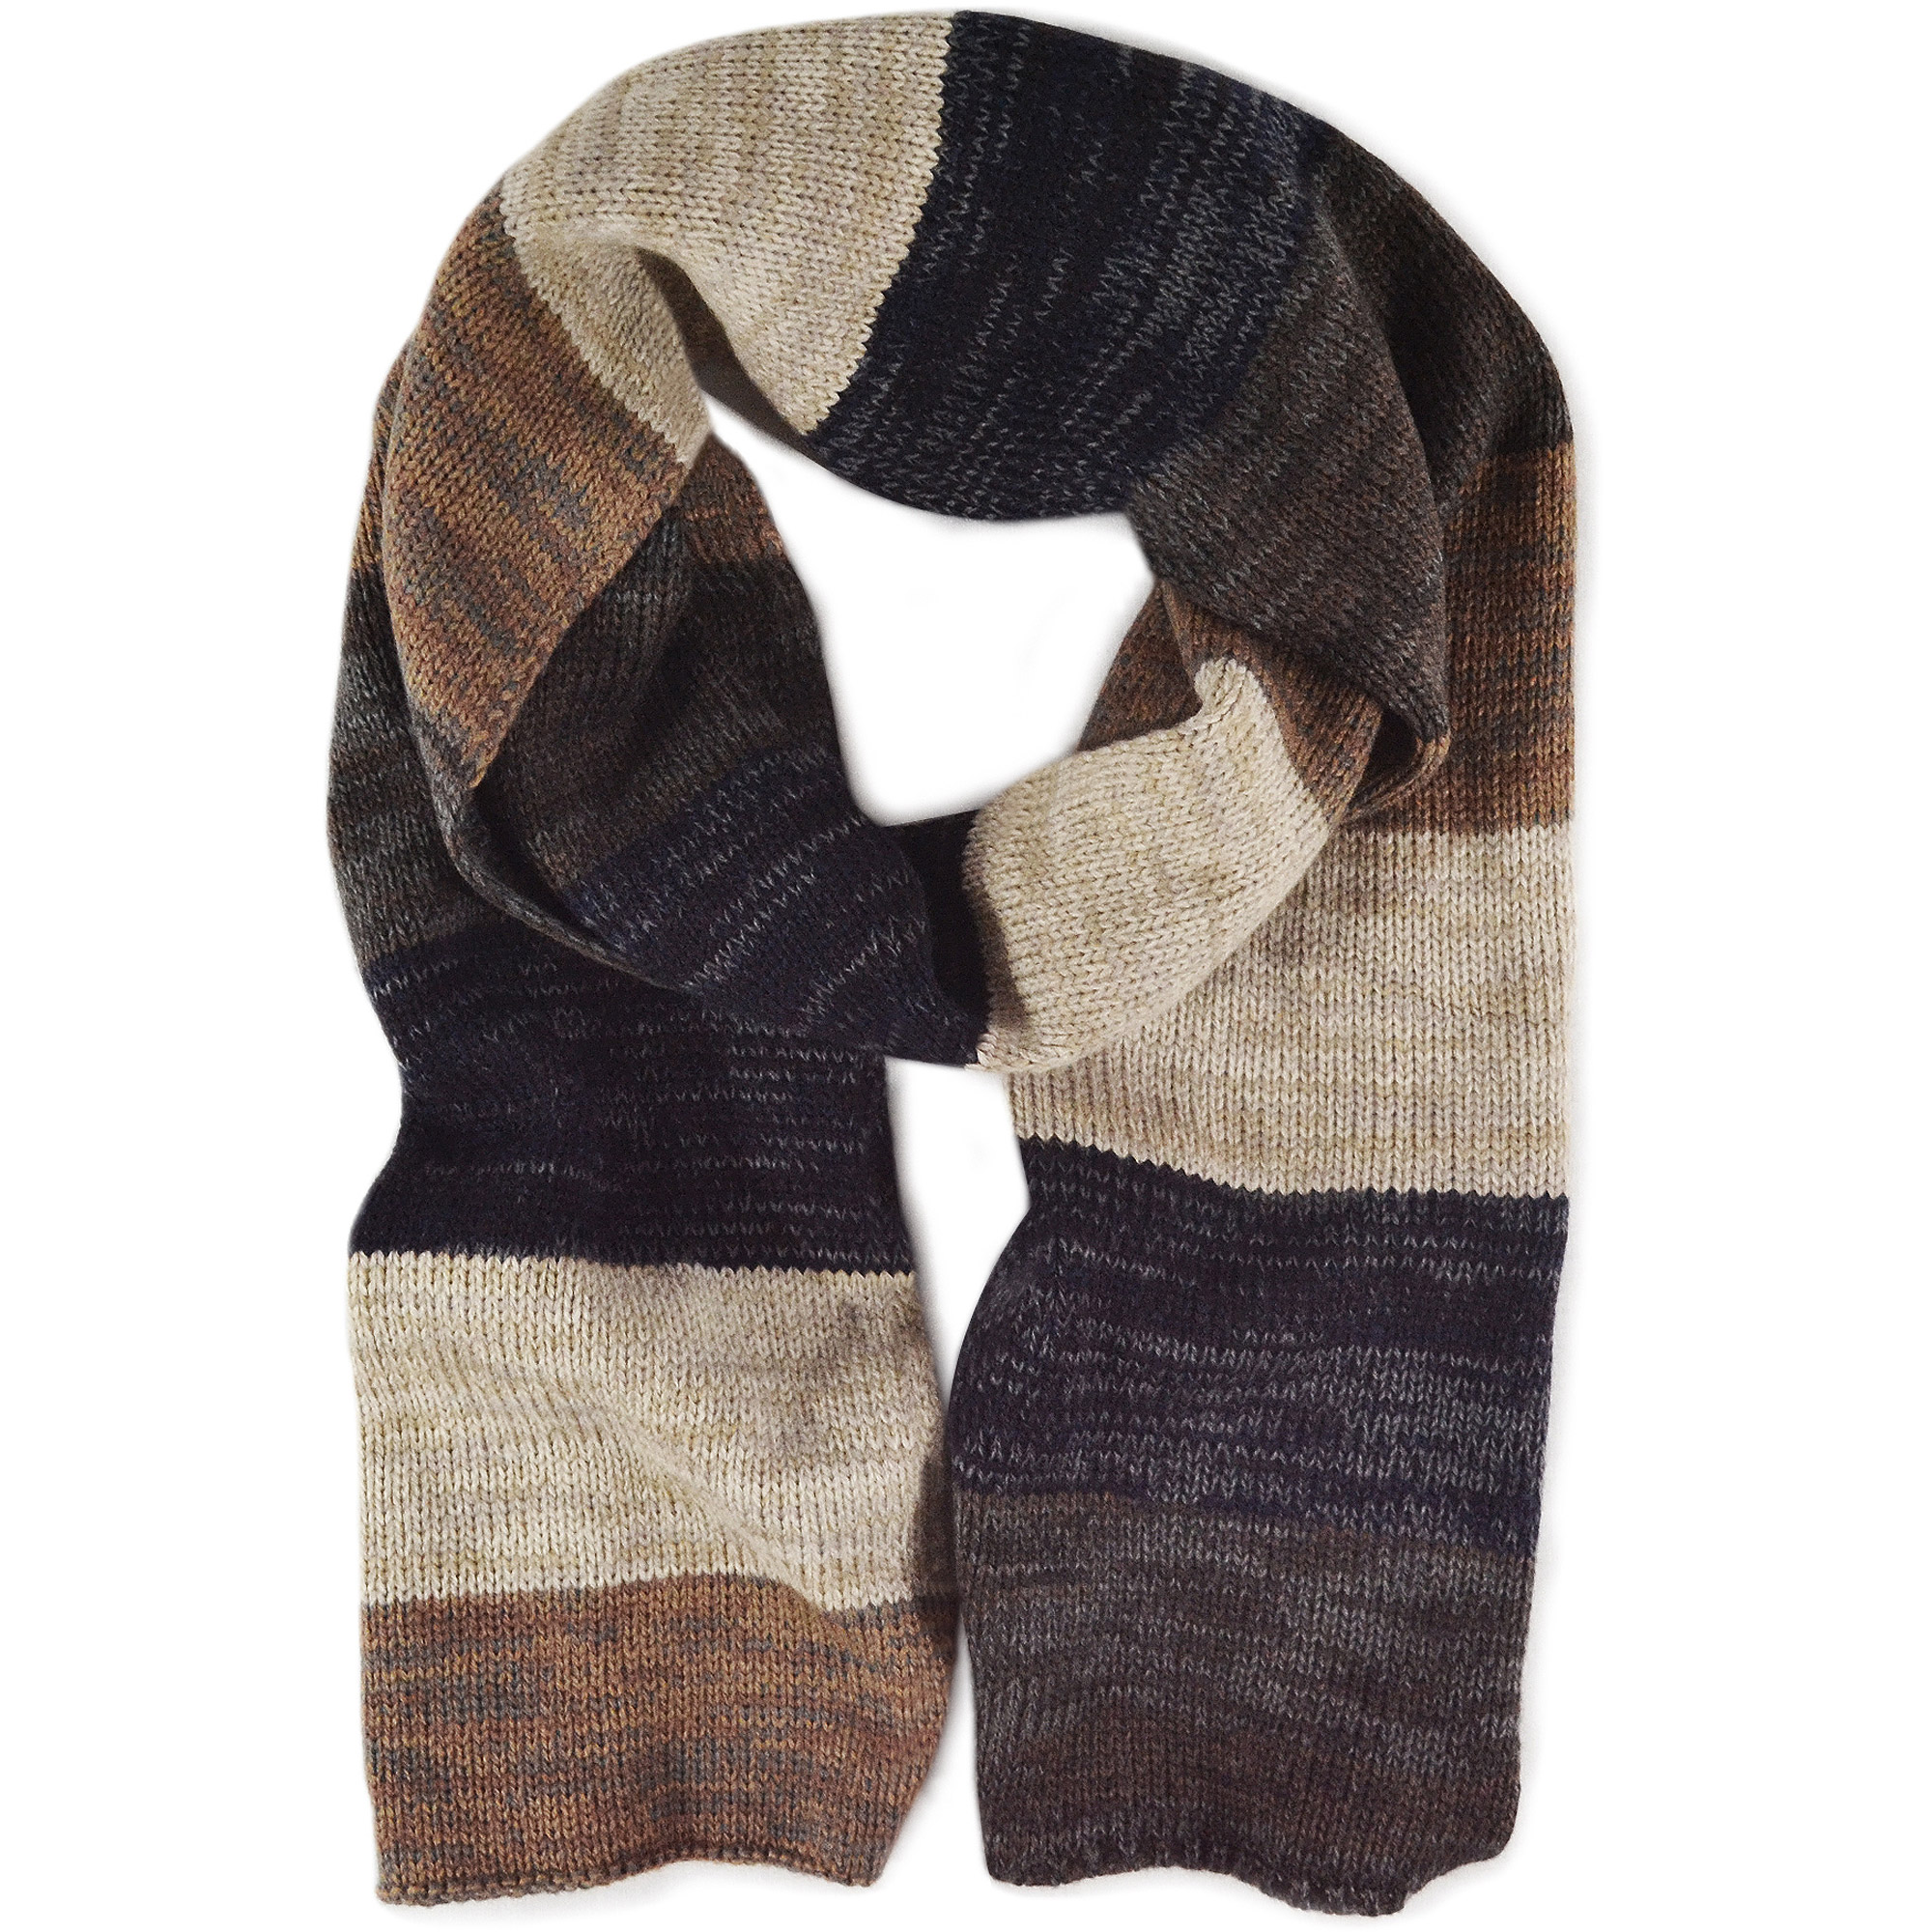 MUK LUKS Men's Ombre Knit Single Layer Scarf